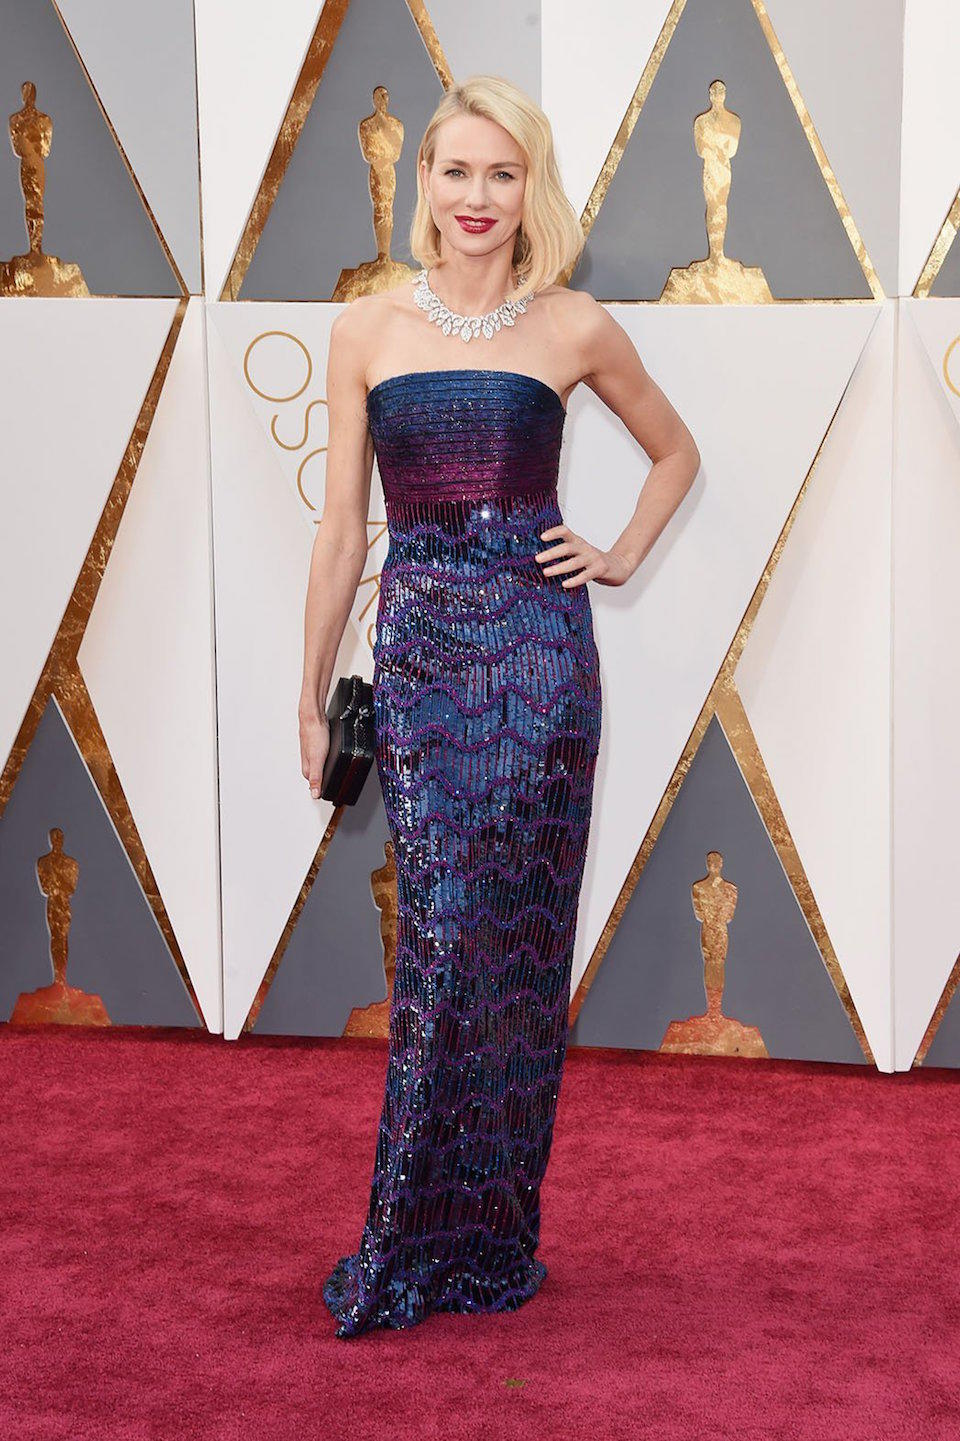 NaomiWatts_88th_Annual_Academy_Awards